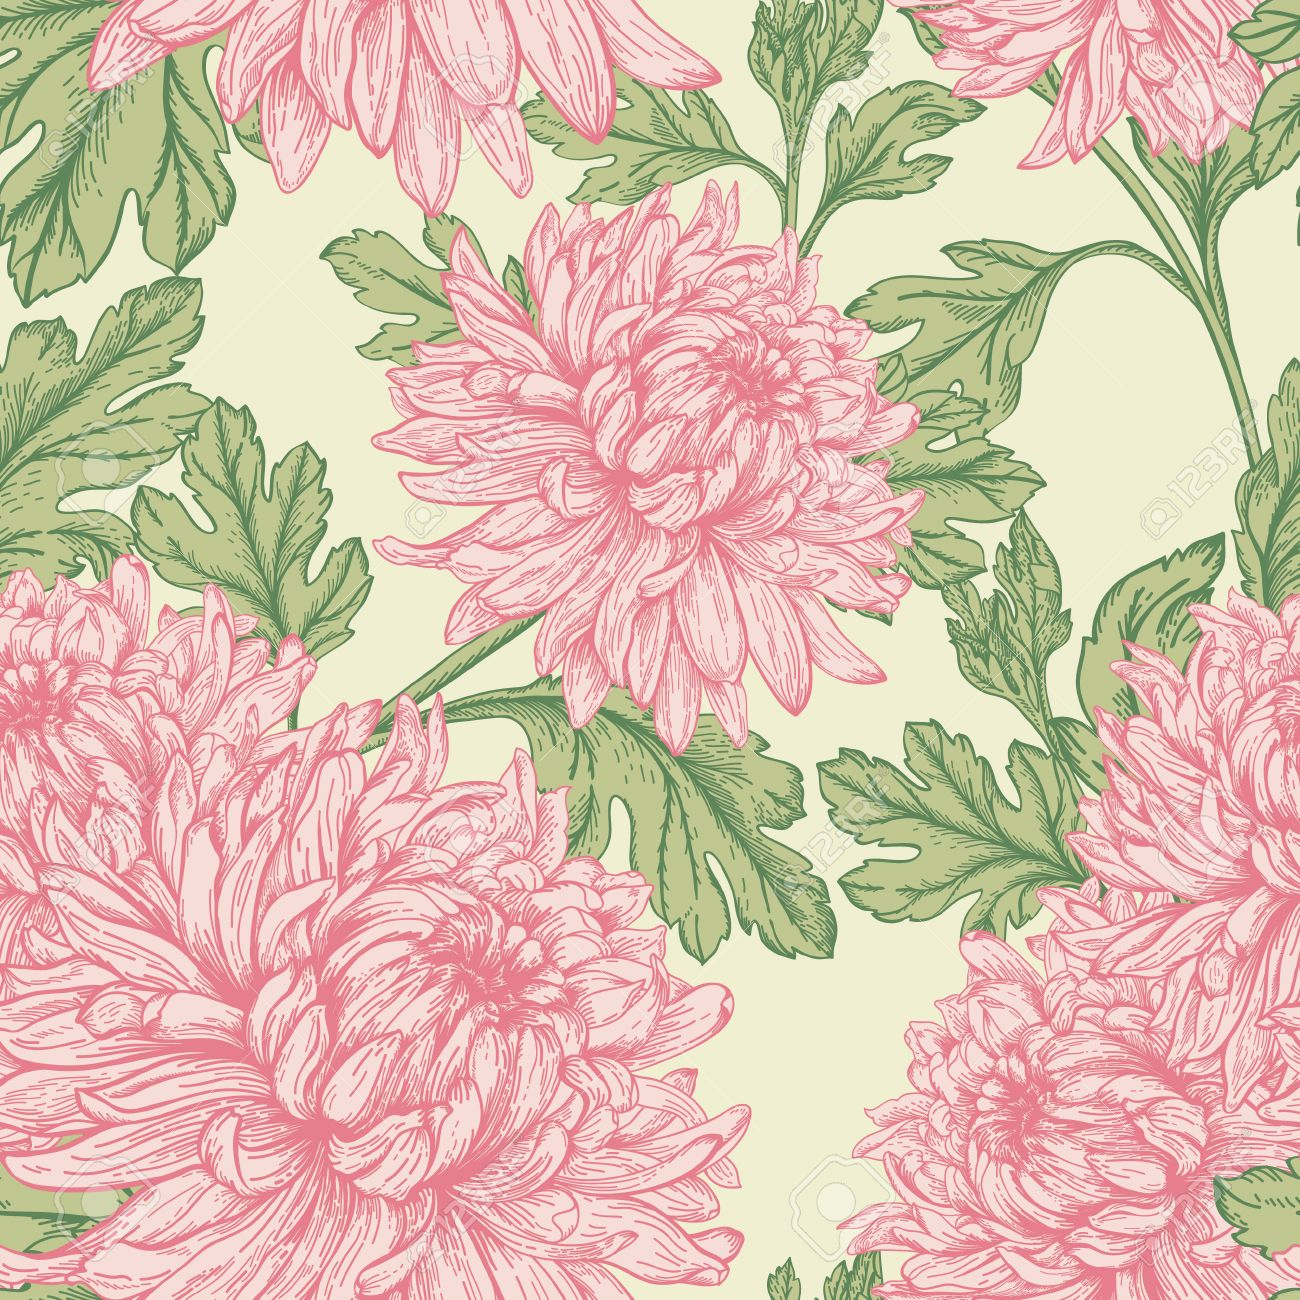 Pink floral seamless vector background floral hrysanthemum seamless - Vintage Seamless Floral Pattern With Flowers Chrysanthemum Vector Illustration Stock Vector 39922963